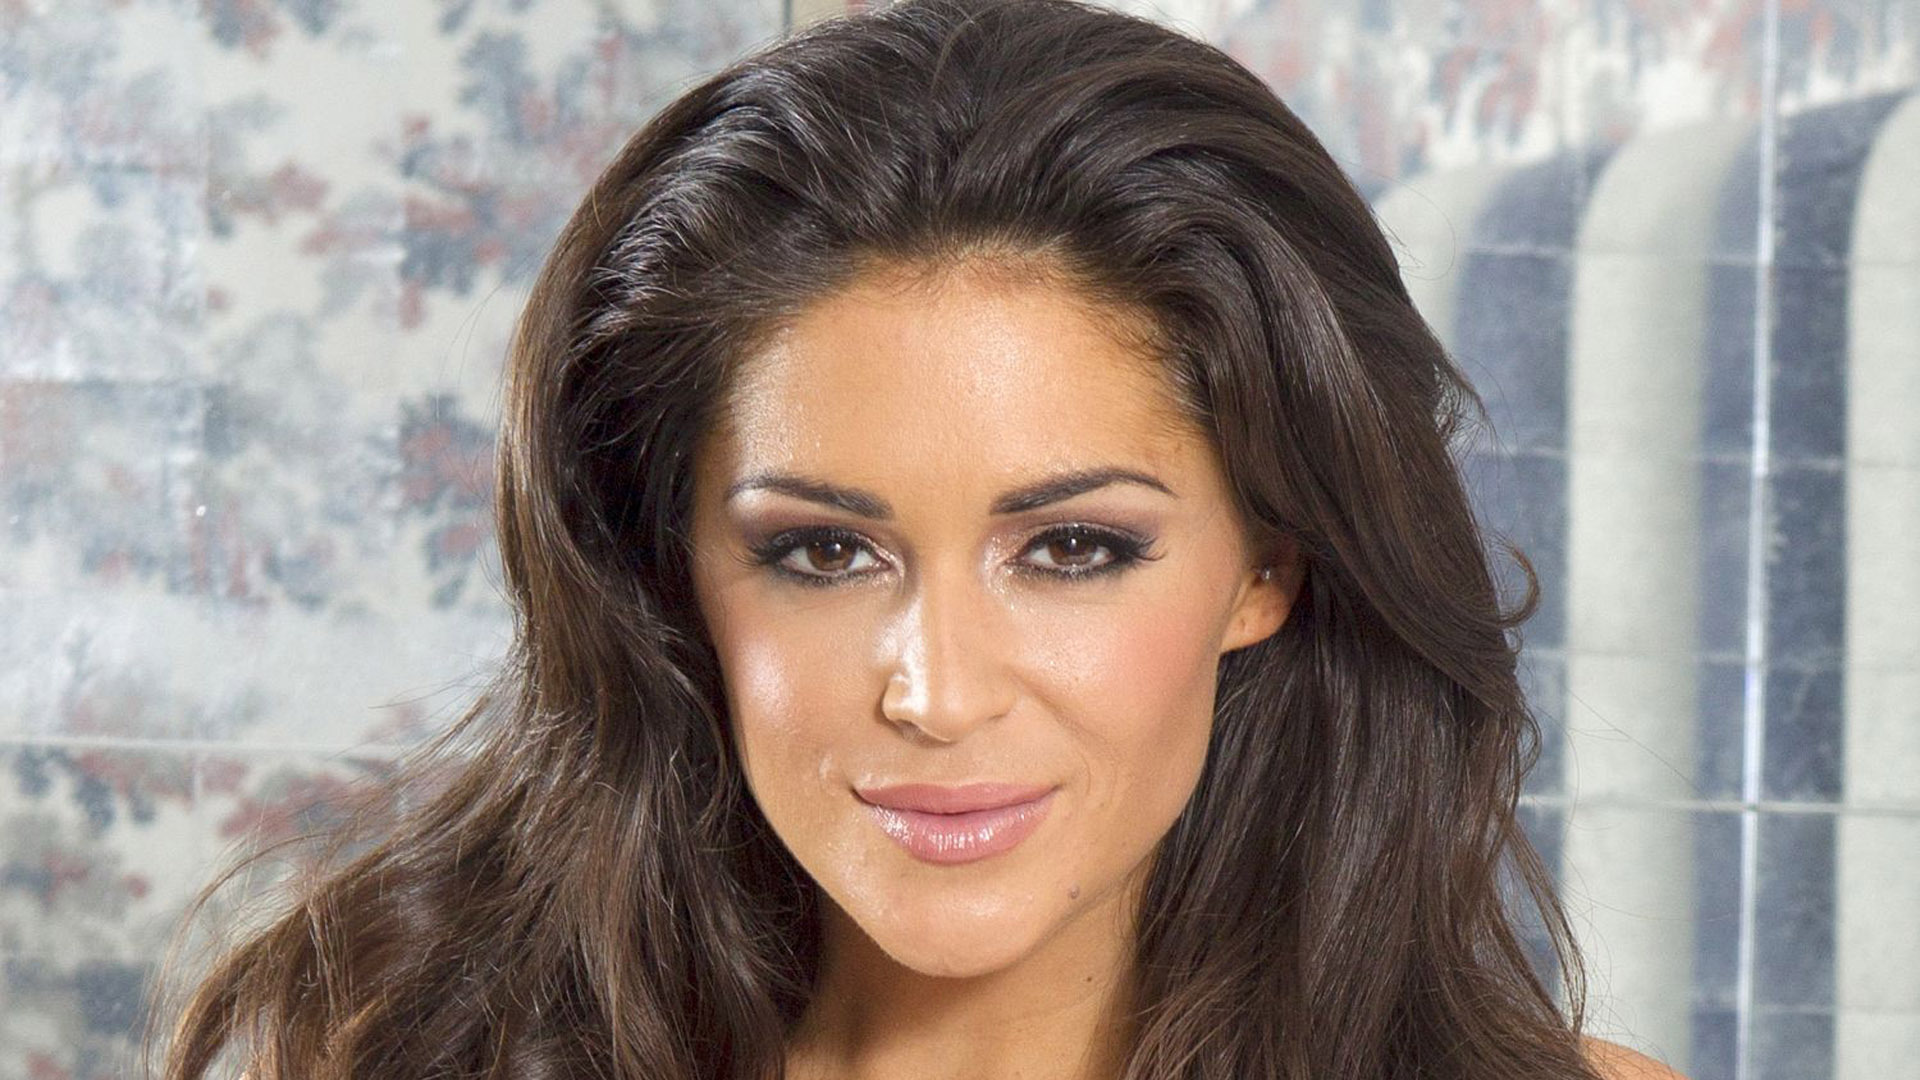 Casey Batchelor Sexy Wallpapers